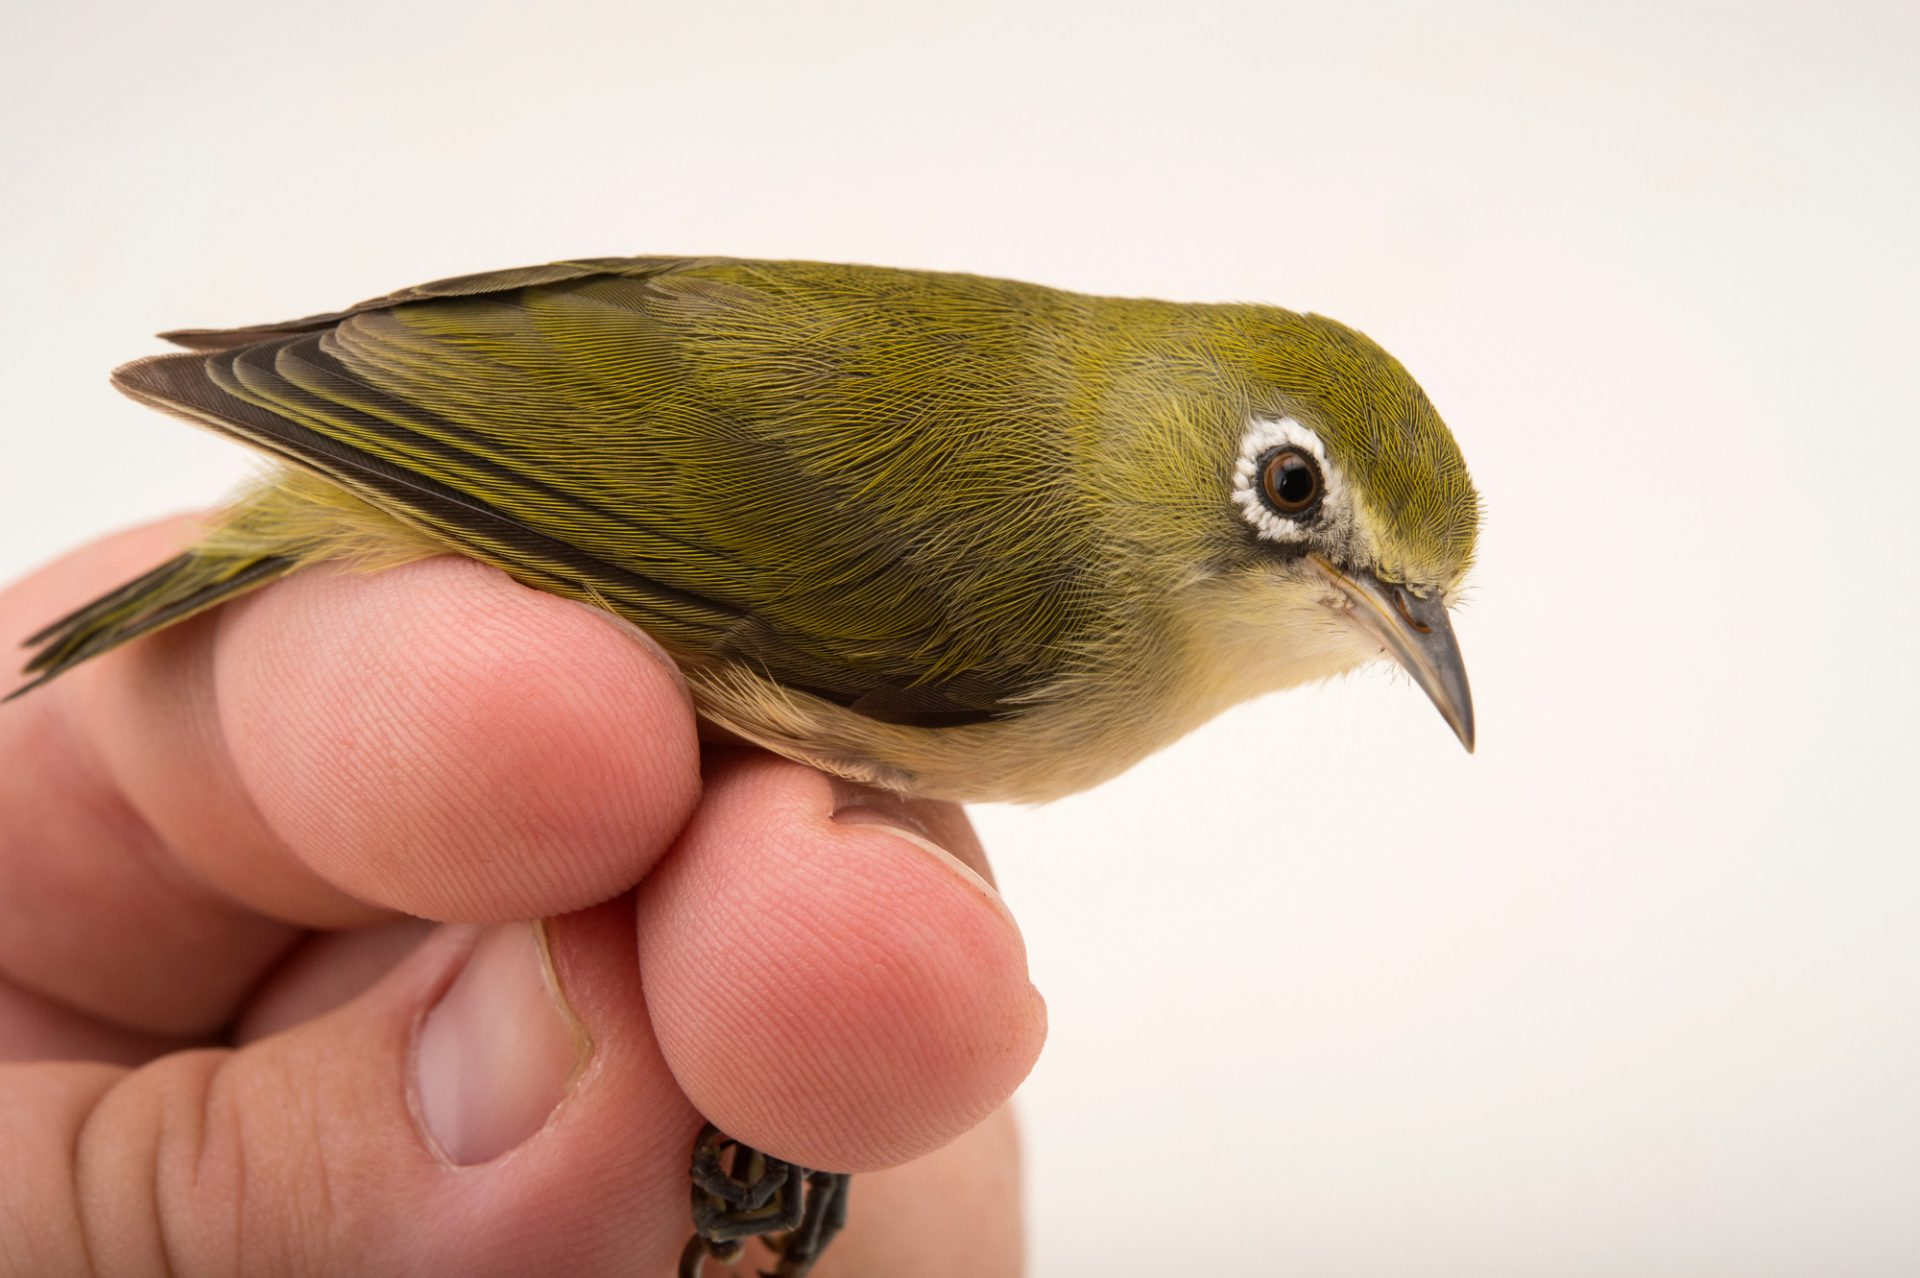 Bridled white-eye (Zosterops saypani) at the Sedgwick County Zoo. This species is listed on IUCN as Endangered.